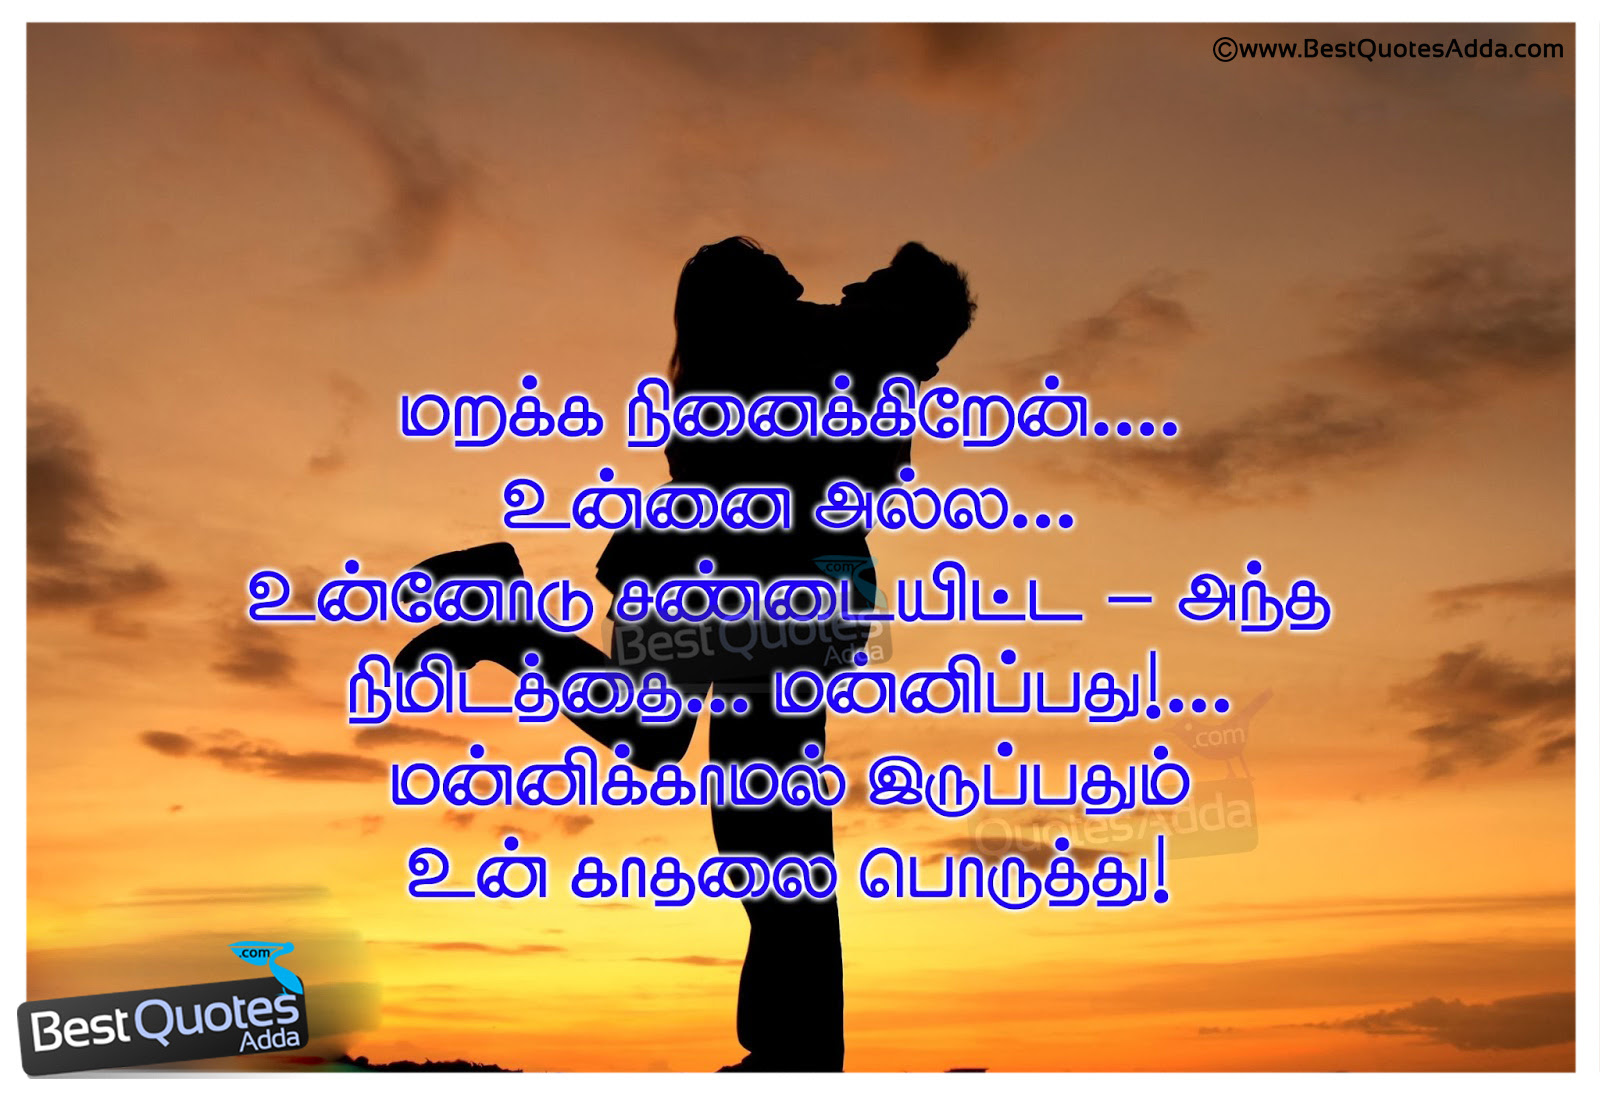 Good Morning Love Quotes Images In Tamil The Mercedes Benz